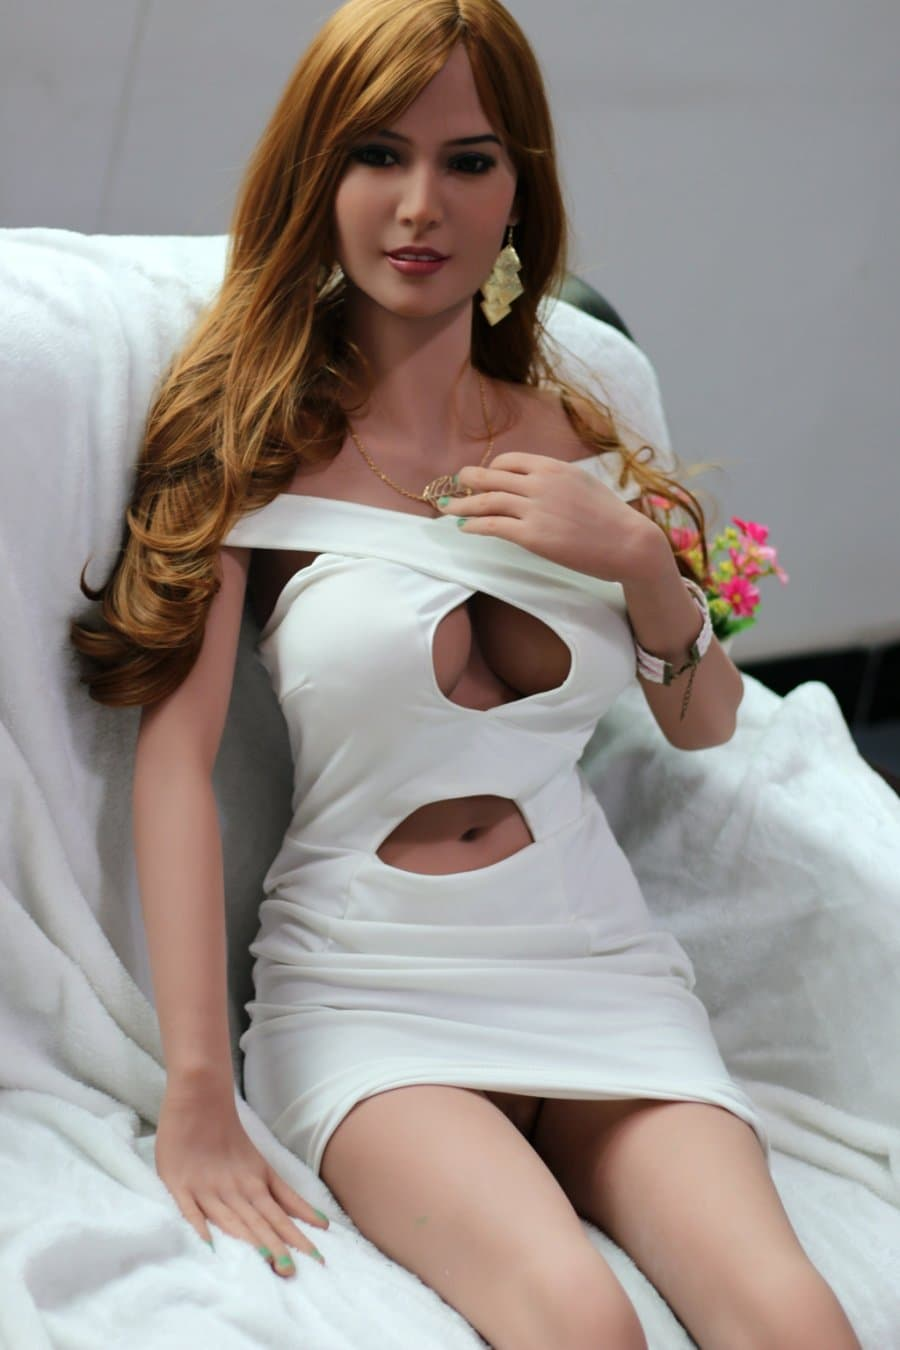 pauley 165cm brown hair medium tits skinny tpe wm sex doll(4)